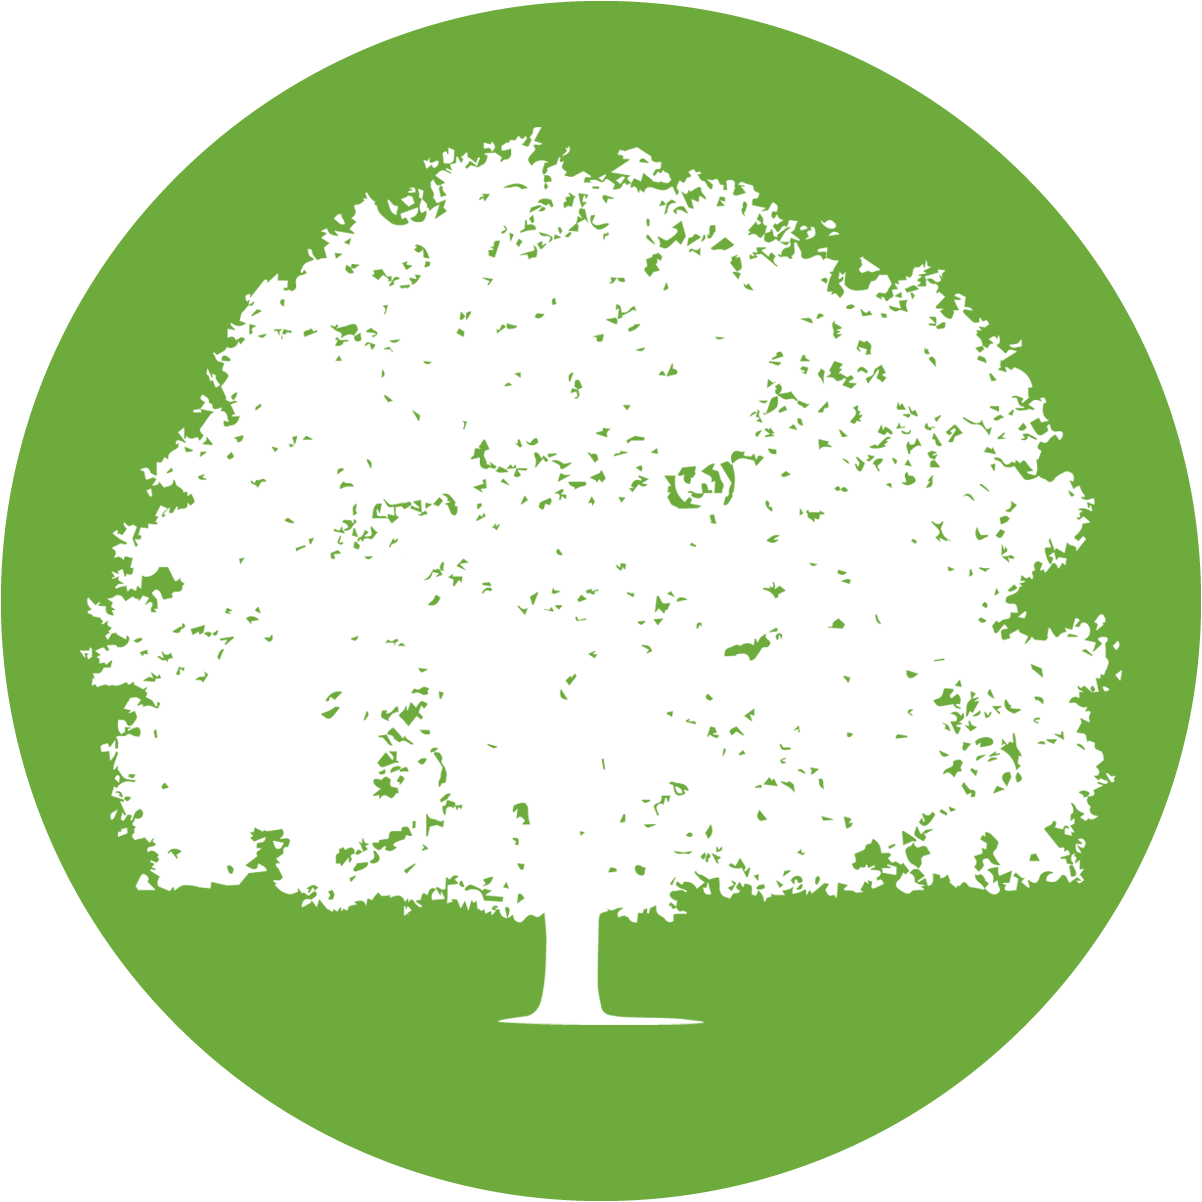 7 clipart with green circle picture transparent library tree-green-circle - City of Duncanville, Texas, USA picture transparent library